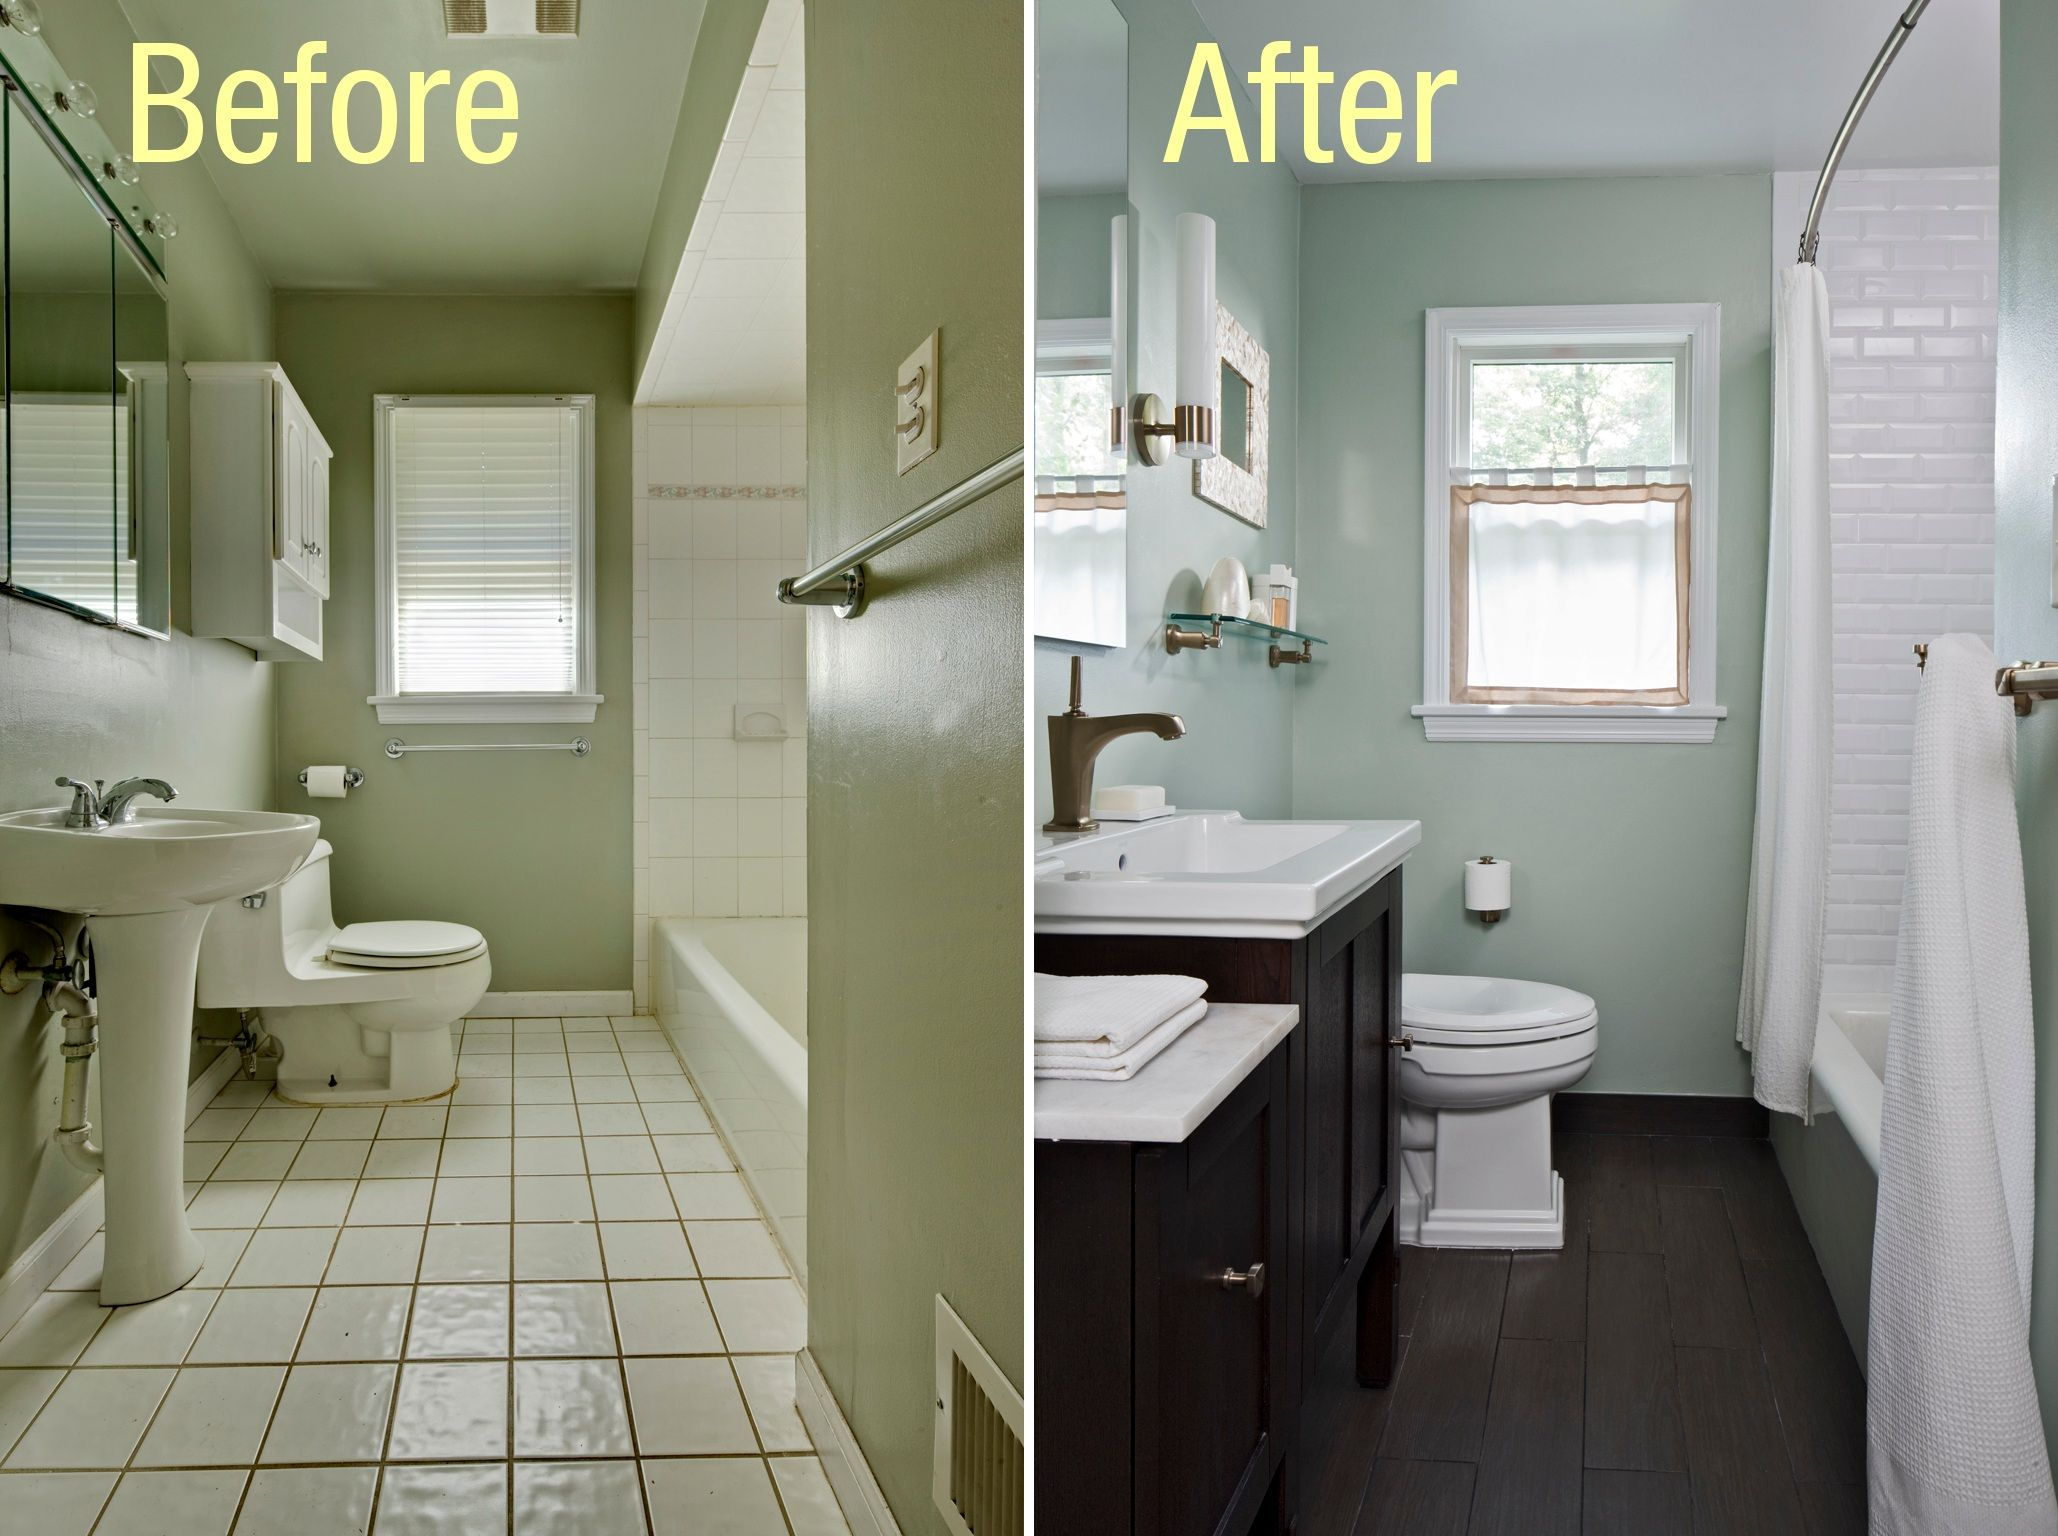 Bathroom vanities on a budget - Bathroom Design Bathroom Vanities Before And After Photos Of Bathroom Renovations From Old Simple To New Elegant Trend One Bathroom Makeovers On A Budget